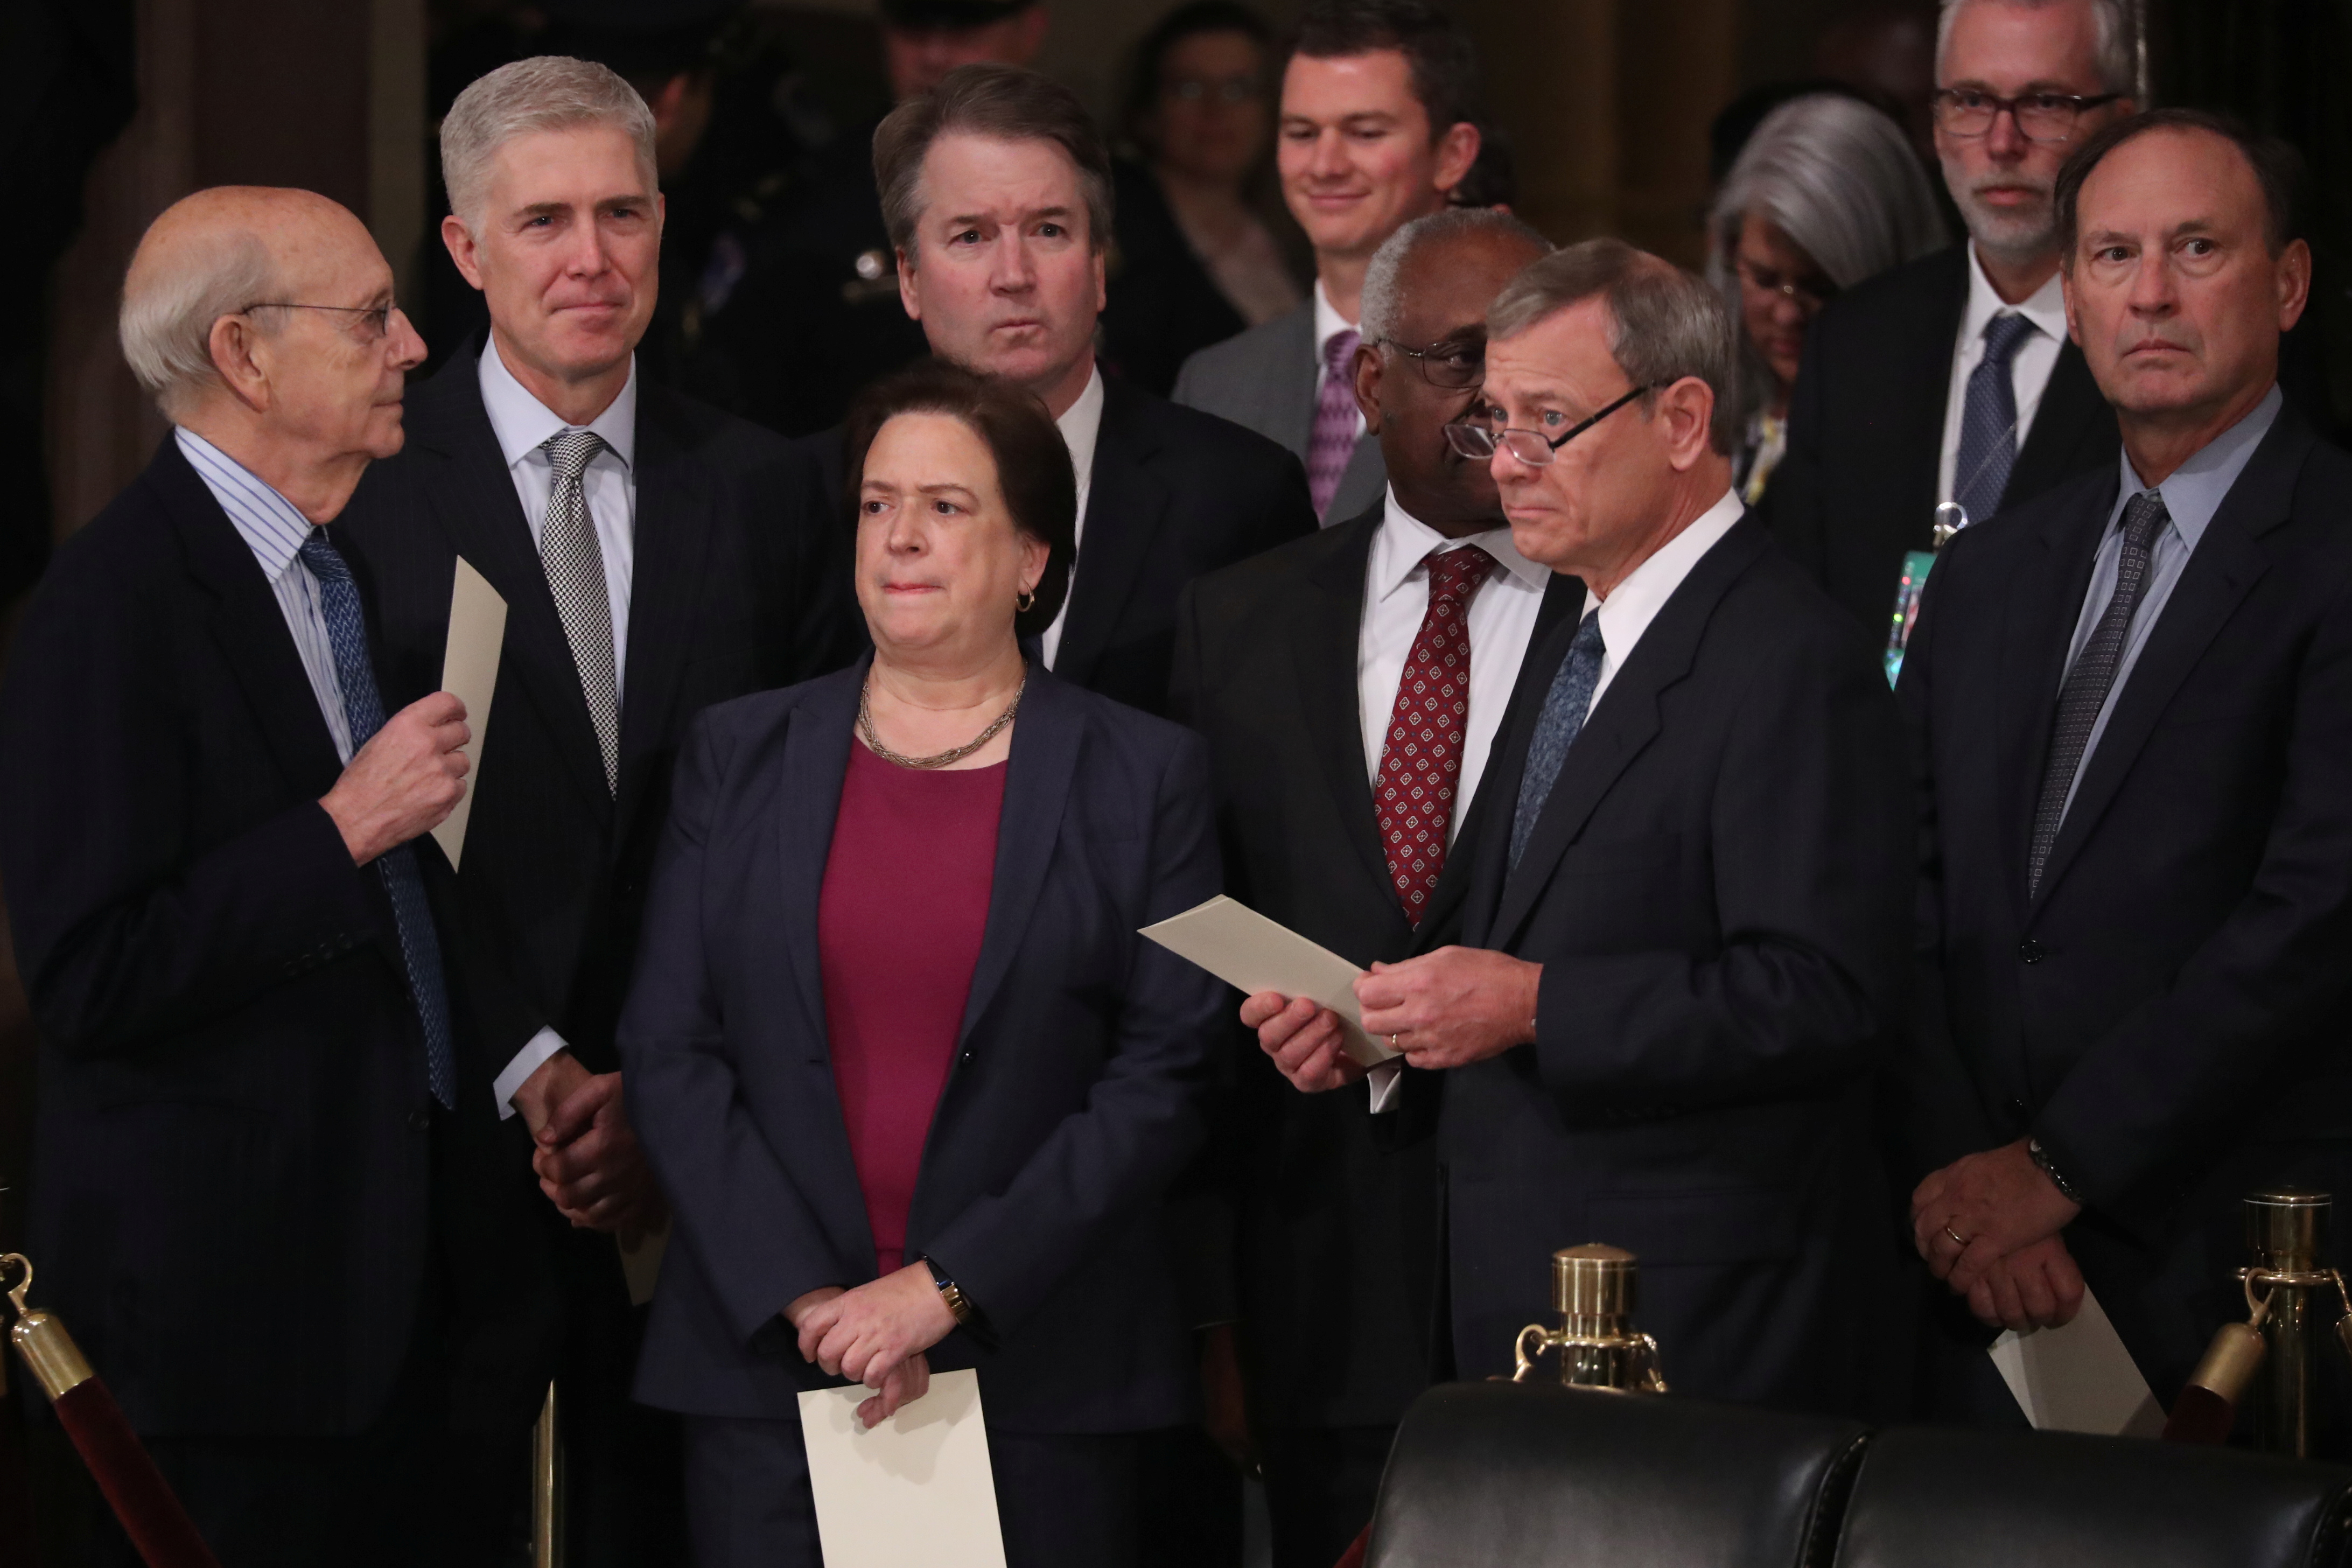 The justices of the Supreme Court await the arrival of the casket of former President George H.W. Bush inside the U.S. Capitol Rotunda on December 3, 2018 (REUTERS/Jonathan Ernst)